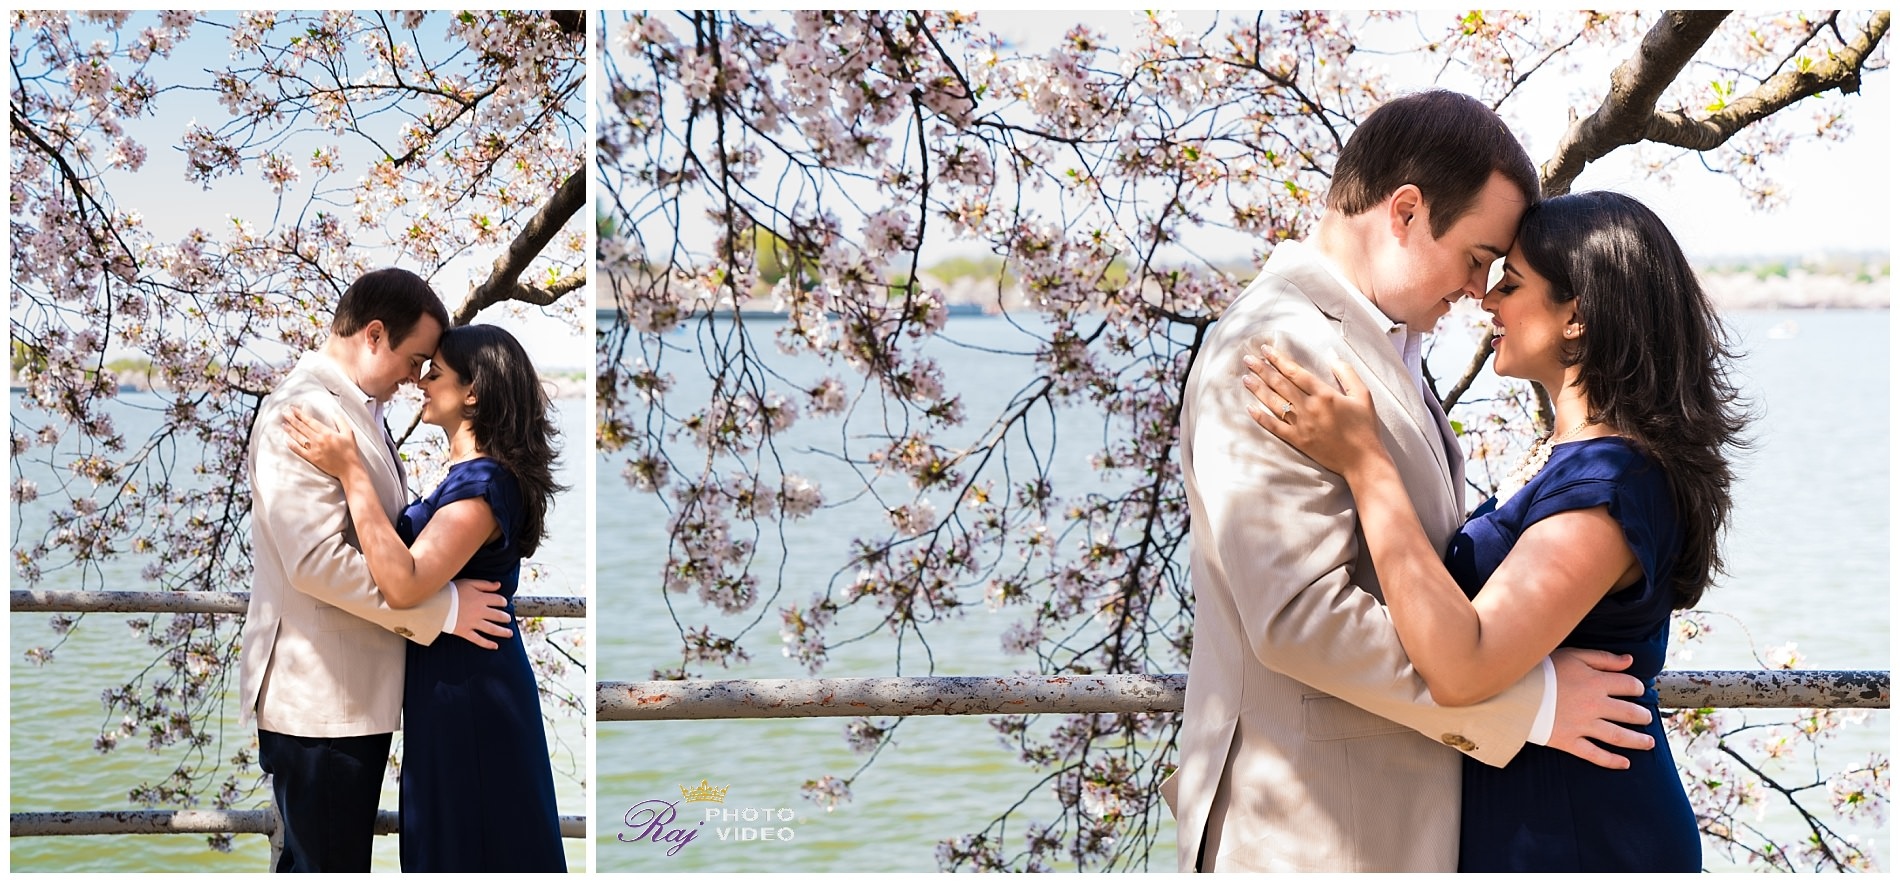 National-Cherry-Blossom-Festival-Washington-DC-Engagement-Shoot-Aditi-Peter-2.jpg